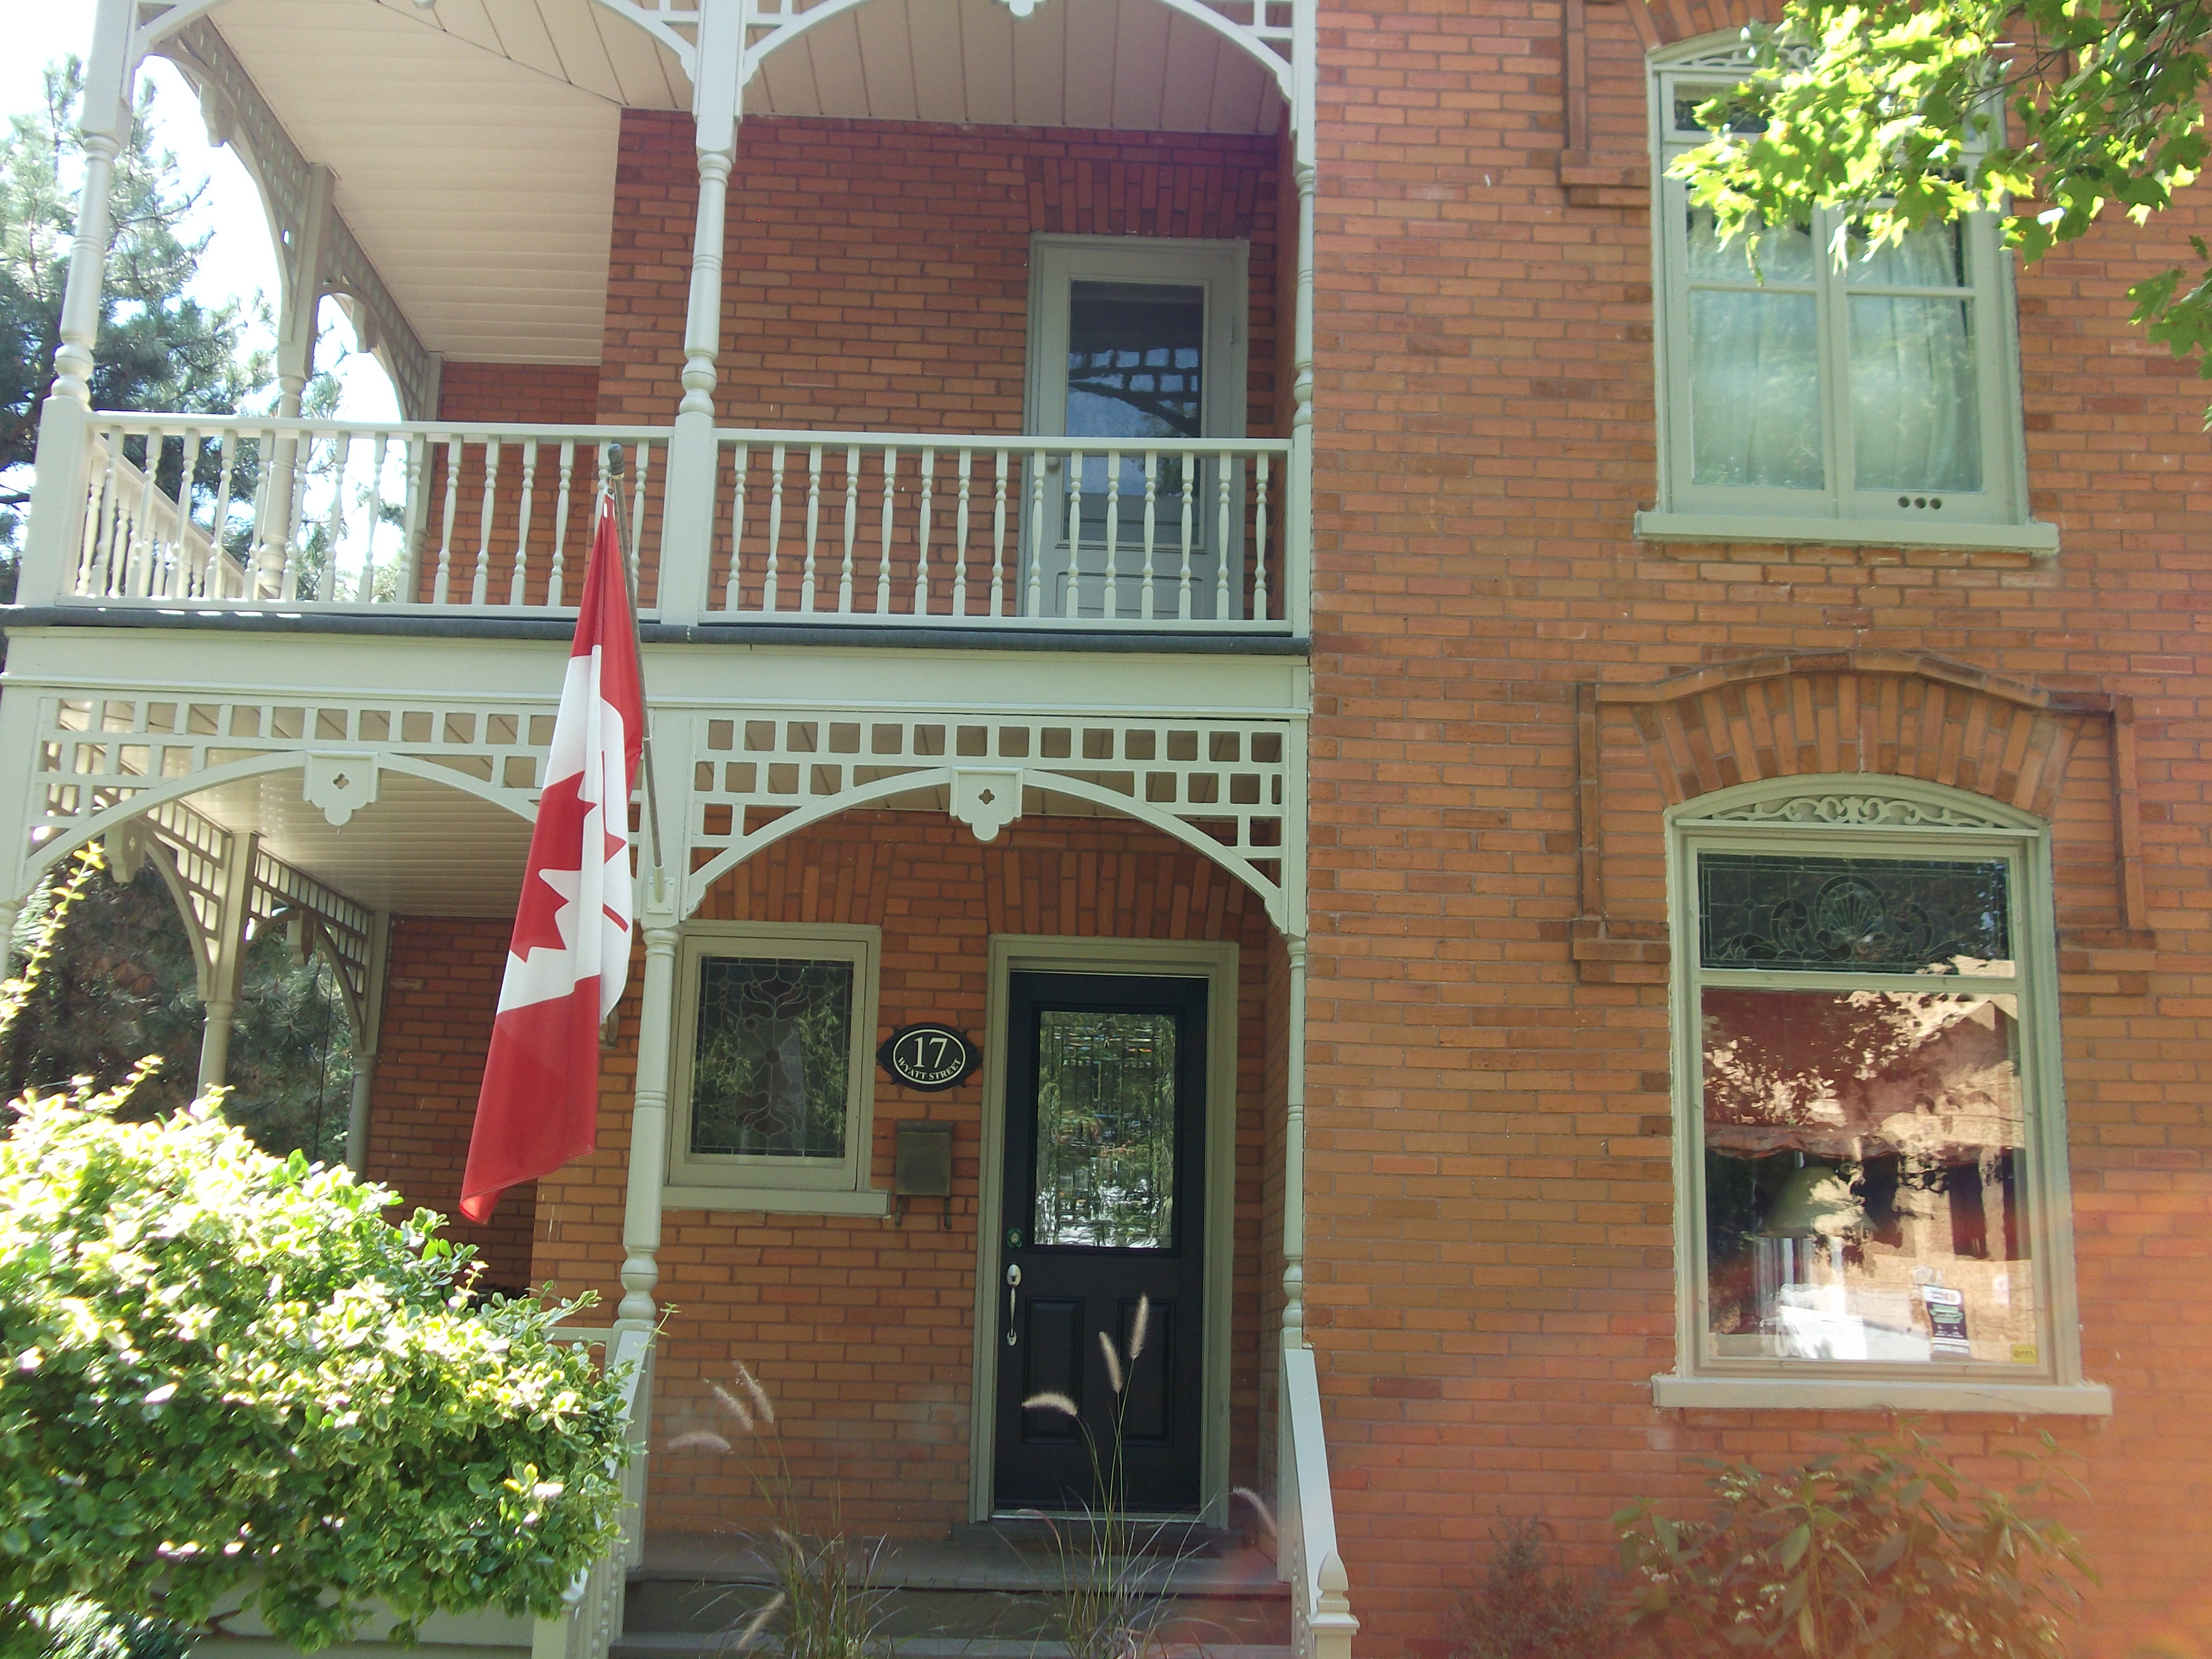 Homes For Sale In Guelph Ontario >> Gallery of Painted Homes in Waterloo and Kitchener